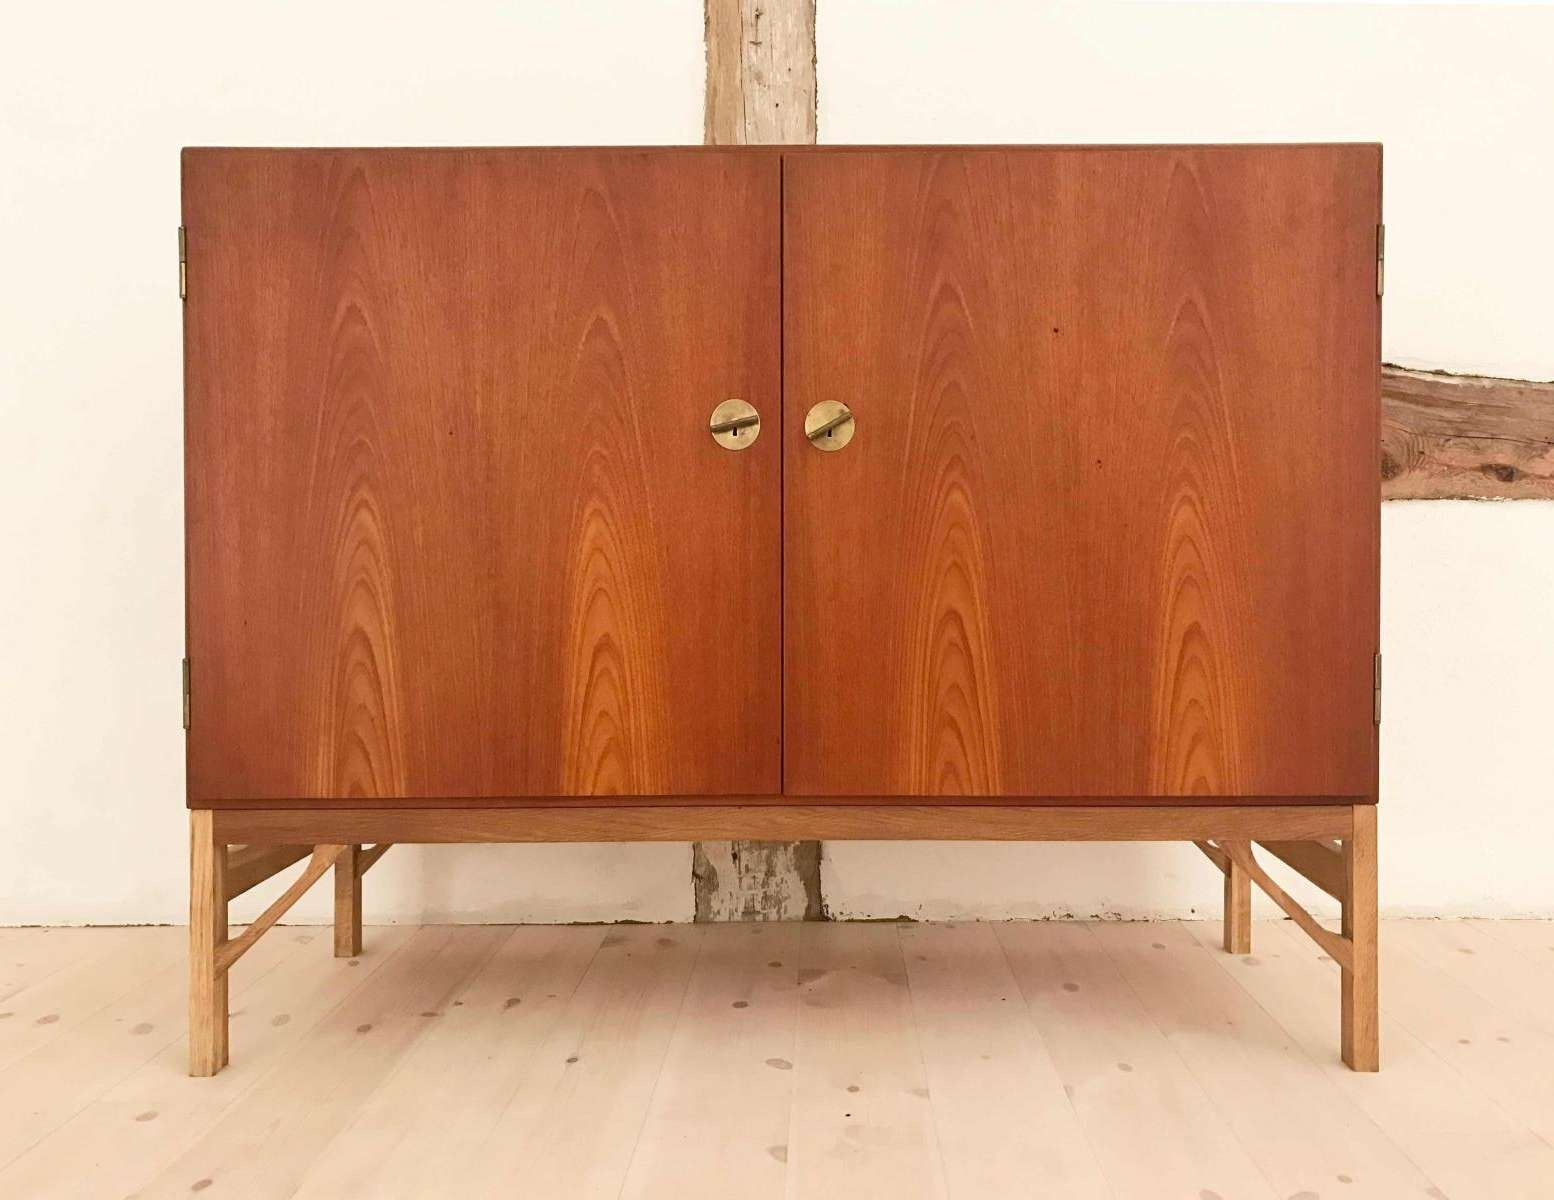 Vintage Danish Teak Sideboard With 2 Doorsbørge Mogensen For Throughout Danish Retro Sideboards (Gallery 7 of 20)